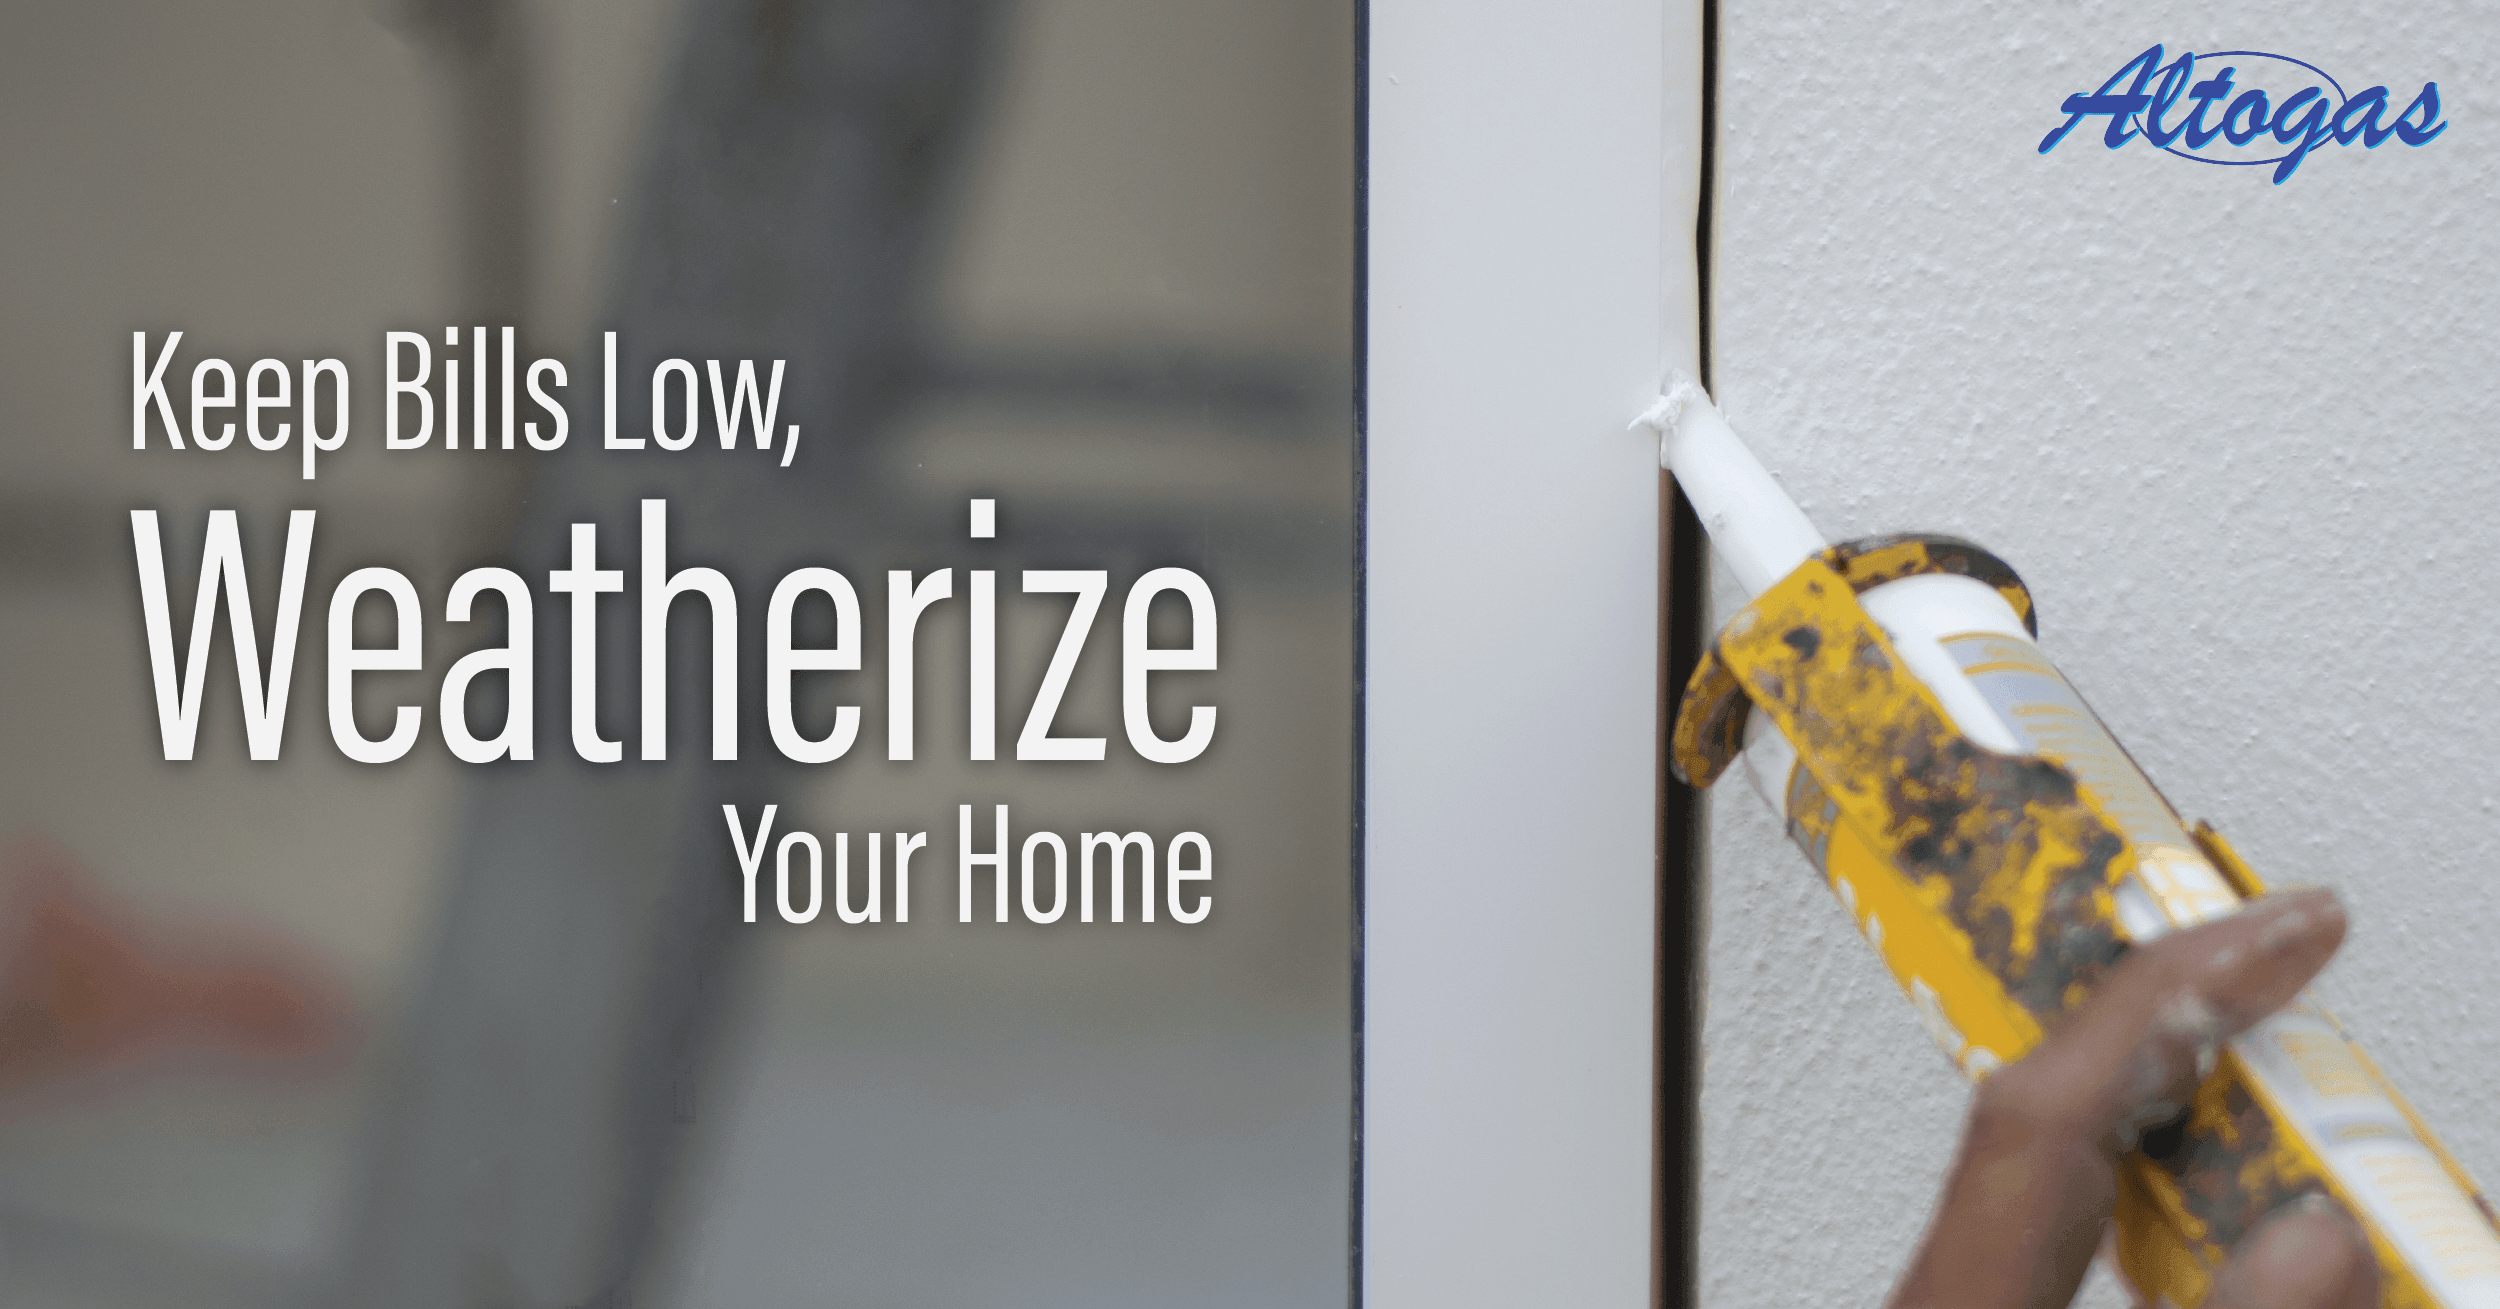 Weatherize Your Home